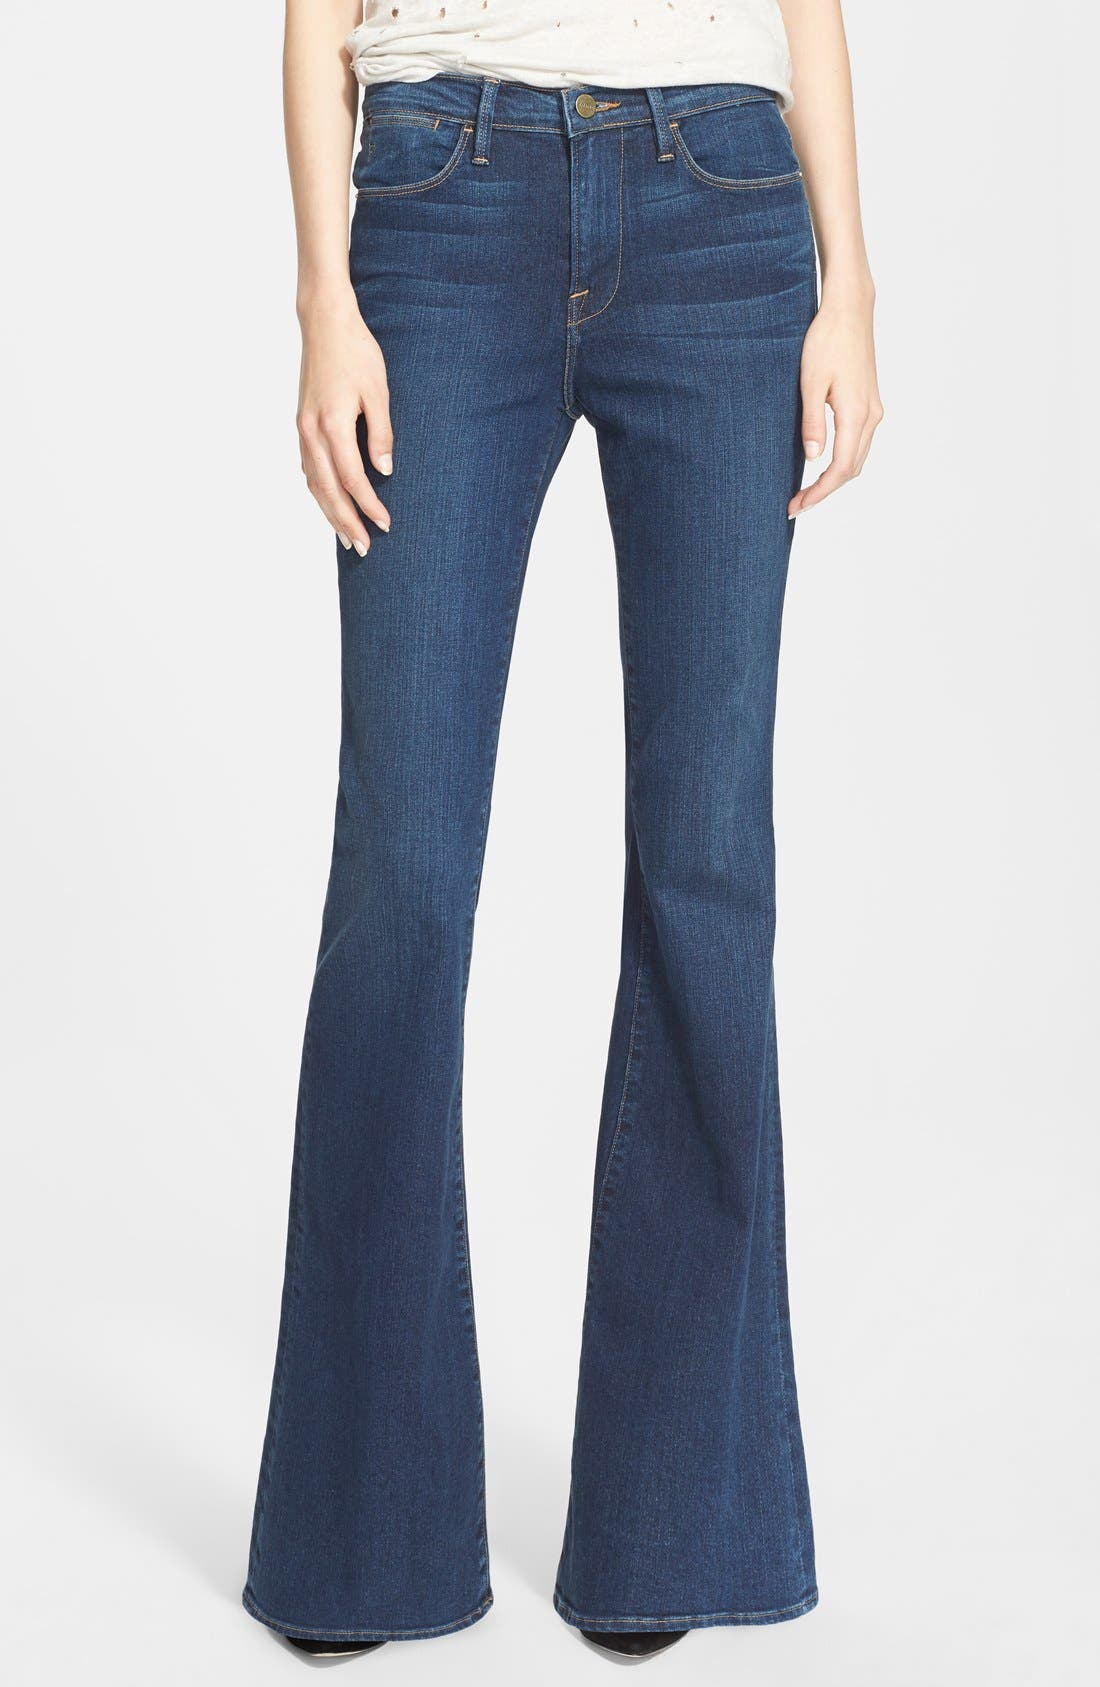 FRAME Denim 'Le High Flare' Flare Leg Jeans, Main, color, 401